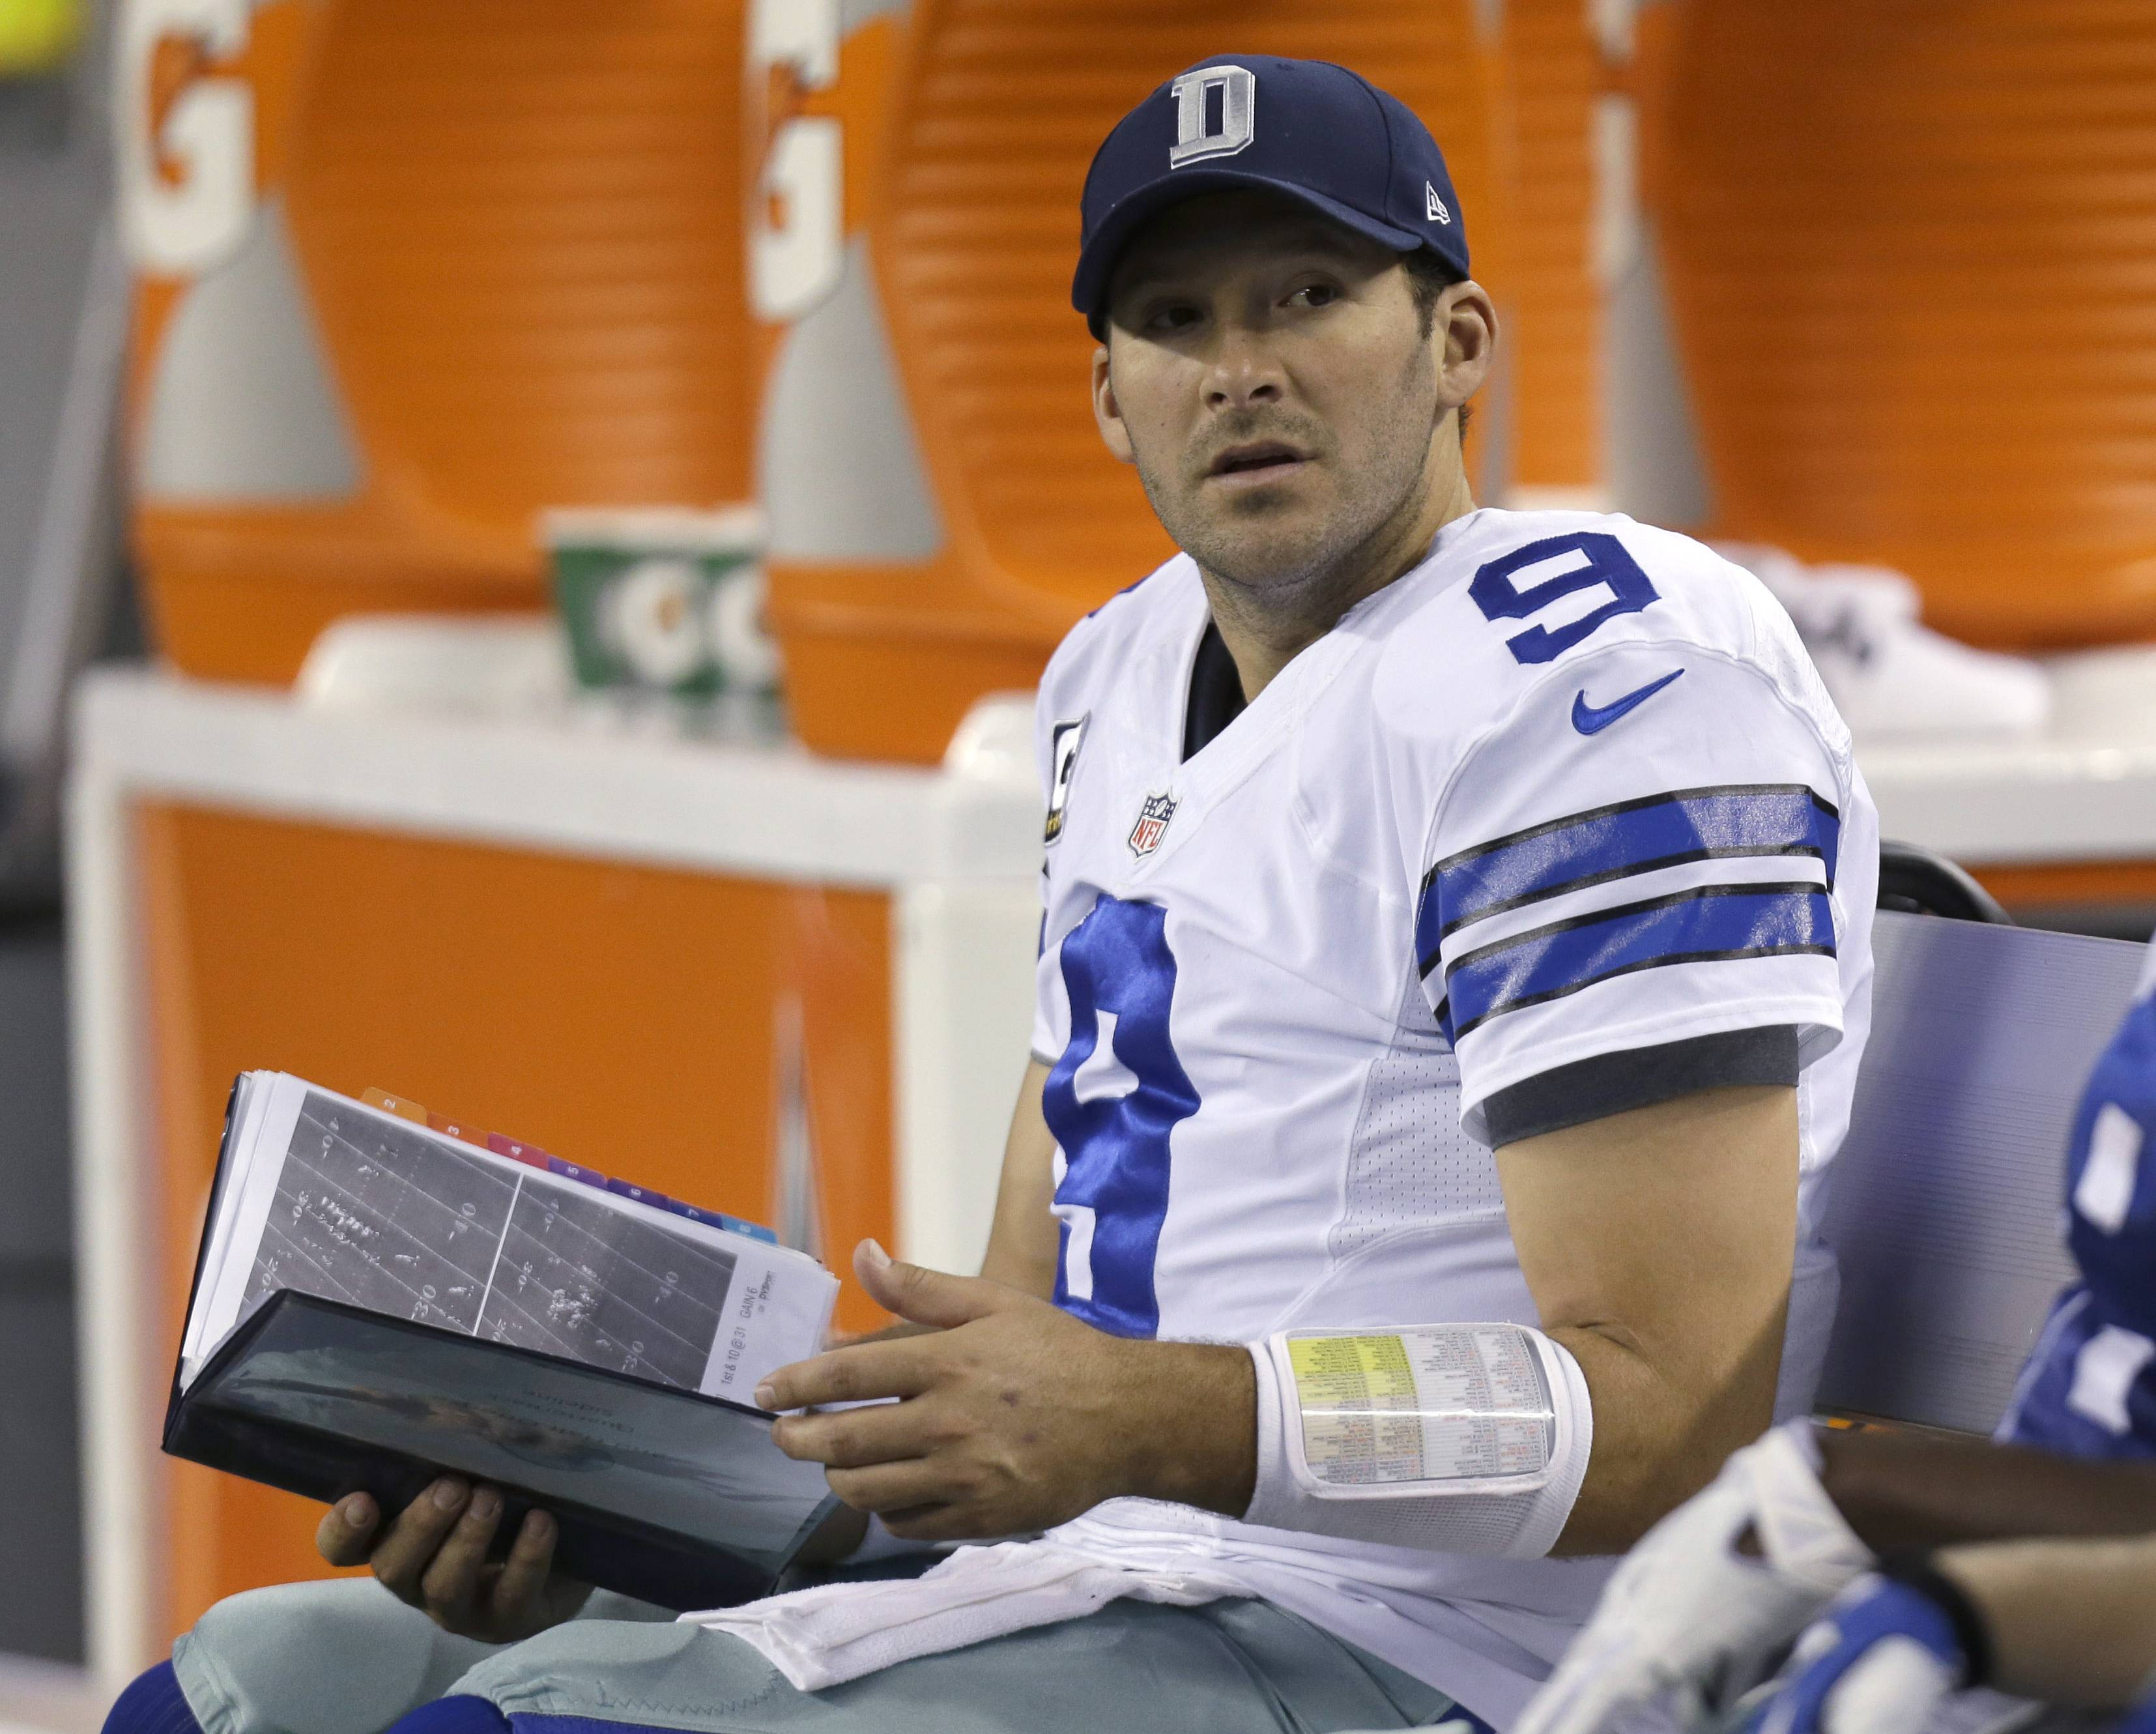 In this Dec. 15, 2013, file photo, Dallas Cowboys quarterback Tony Romo sits on the bench with a book of play printouts during the second half of an NFL football game against the Green Bay Packers in Arlington, Texas. NFL teams used to take Polaroid pictures of plays from atop the stadium during games then send them down to the field on a rope. Technology improved so that an automated camera could deliver the images to a printer on the sideline, creating that familiar sight of a quarterback staring at a sheet of paper to figure out what went wrong on an interception. That was still the case last season, when fans in the stands could watch highlights on their smartphones, but players and coaches were flipping through three-ring binders of black-and-white photos.